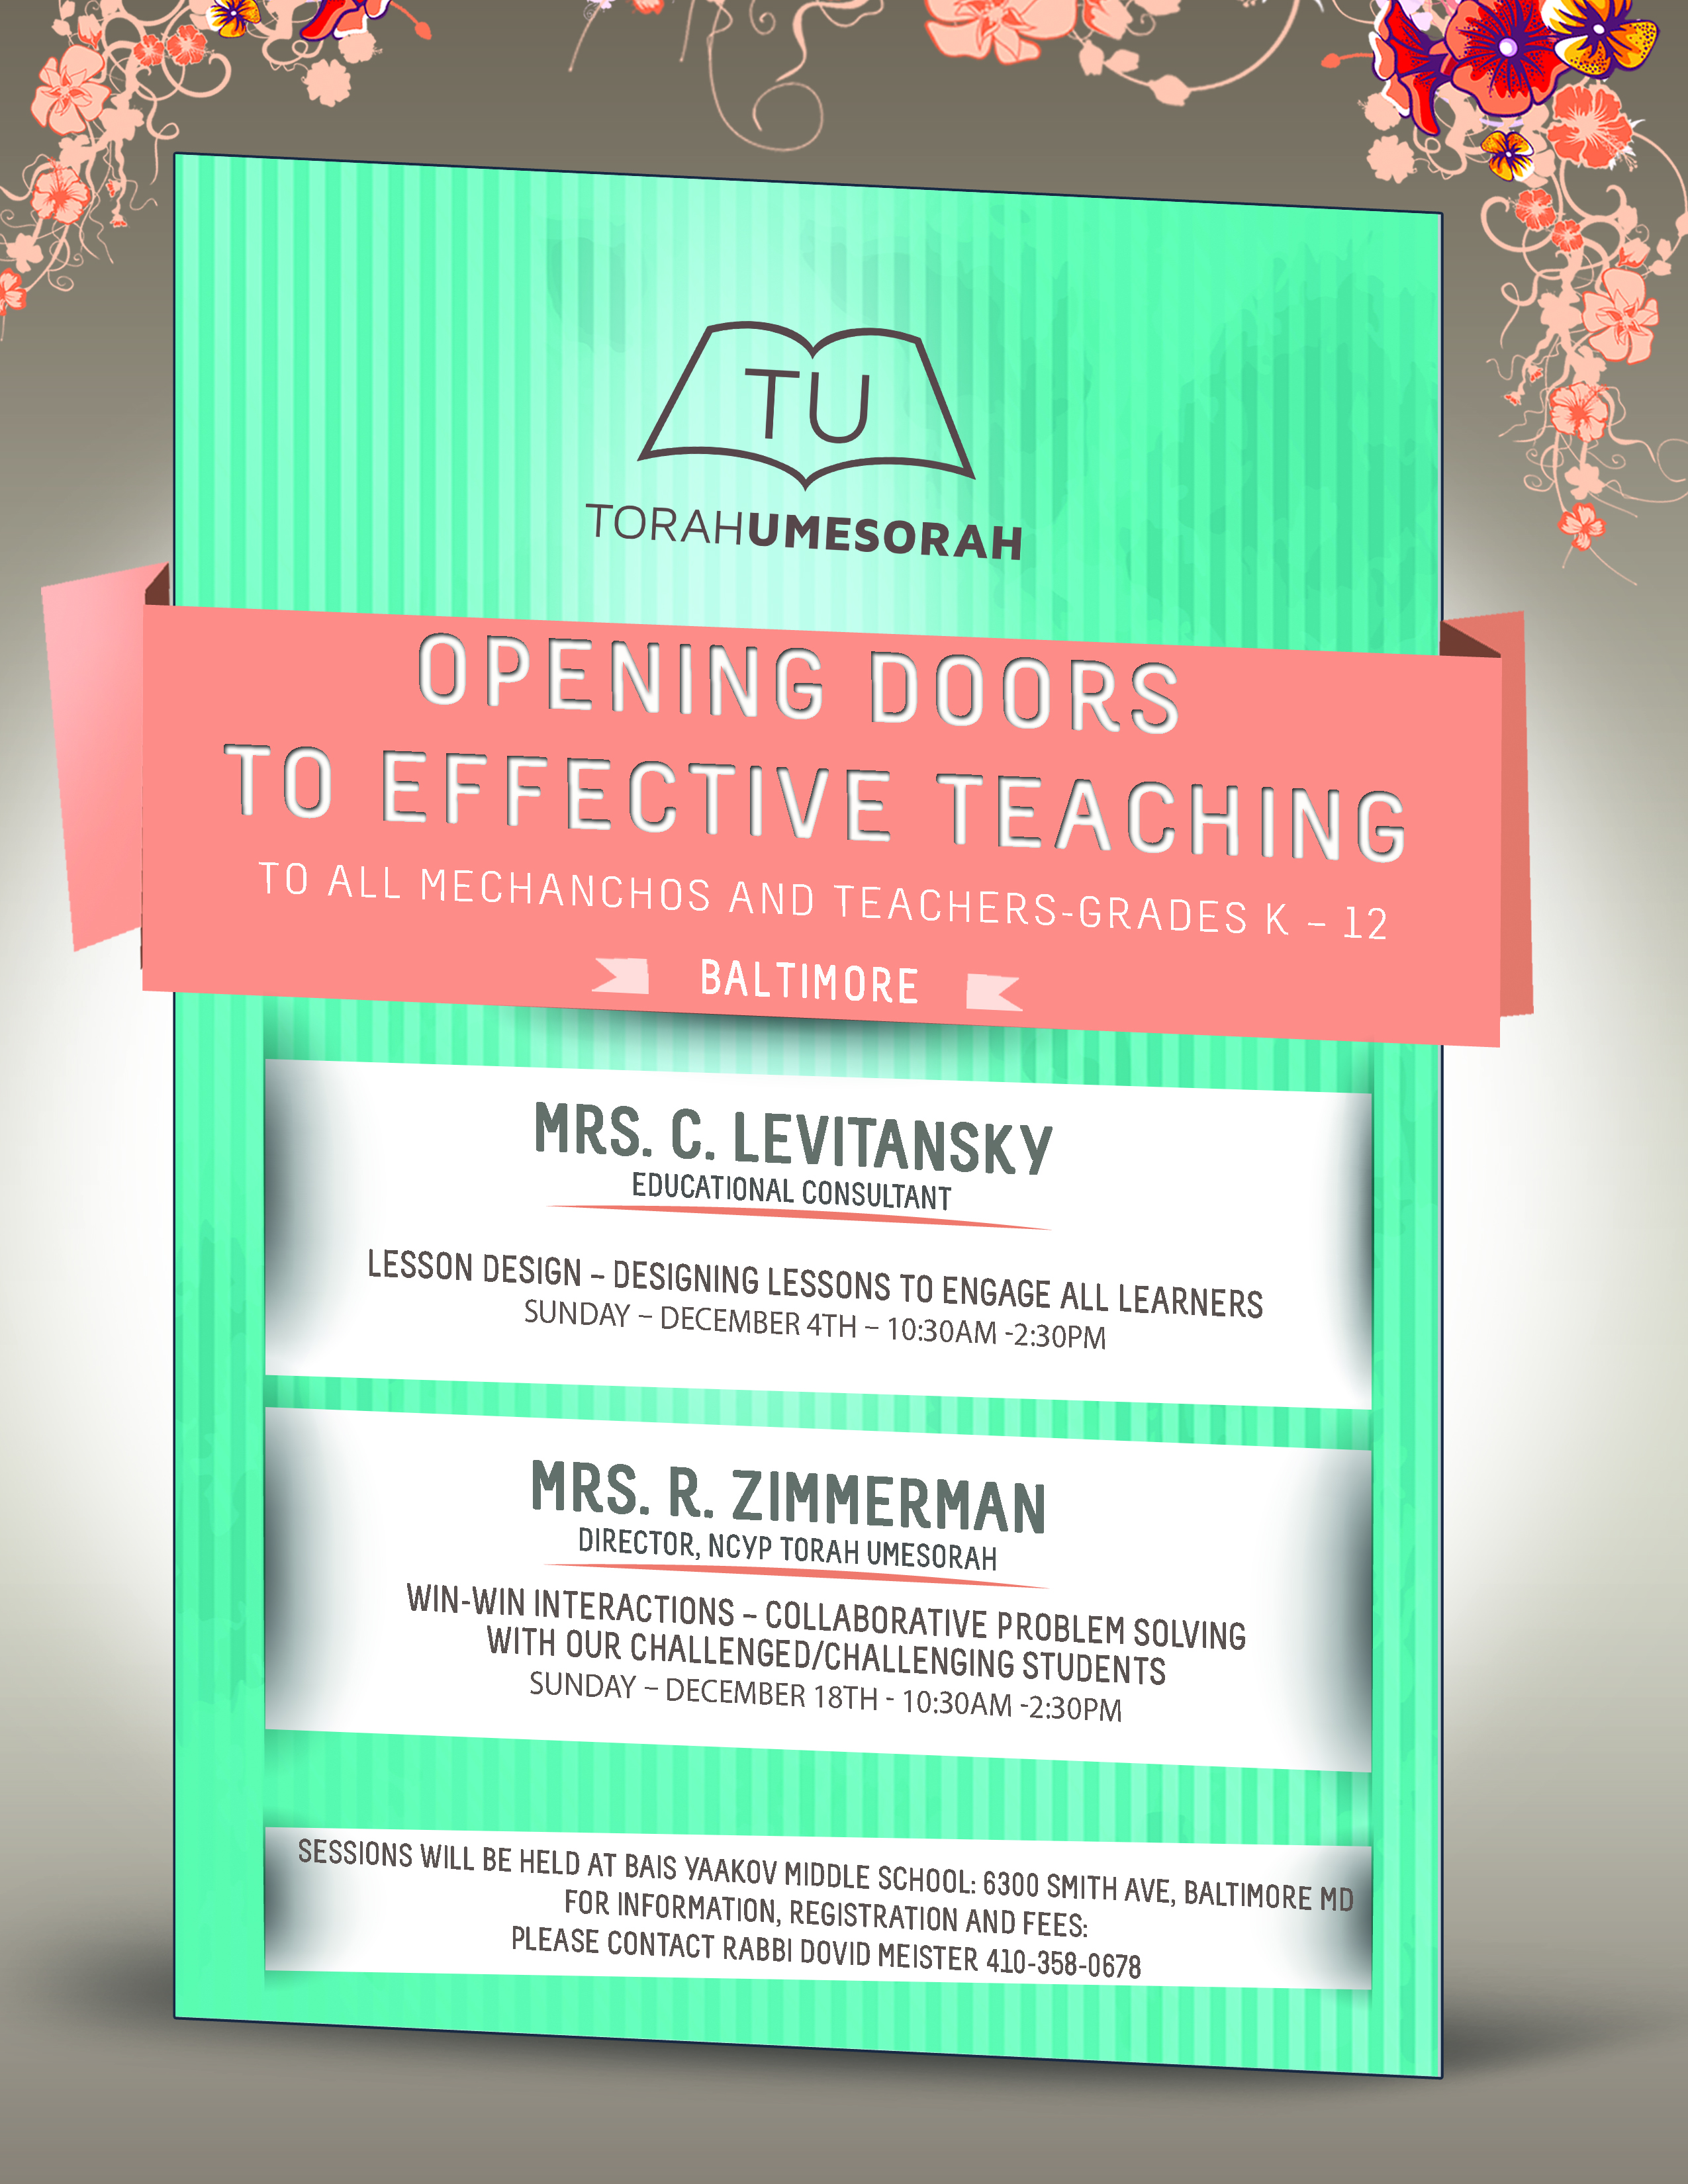 Opening Doors to Effective Teaching